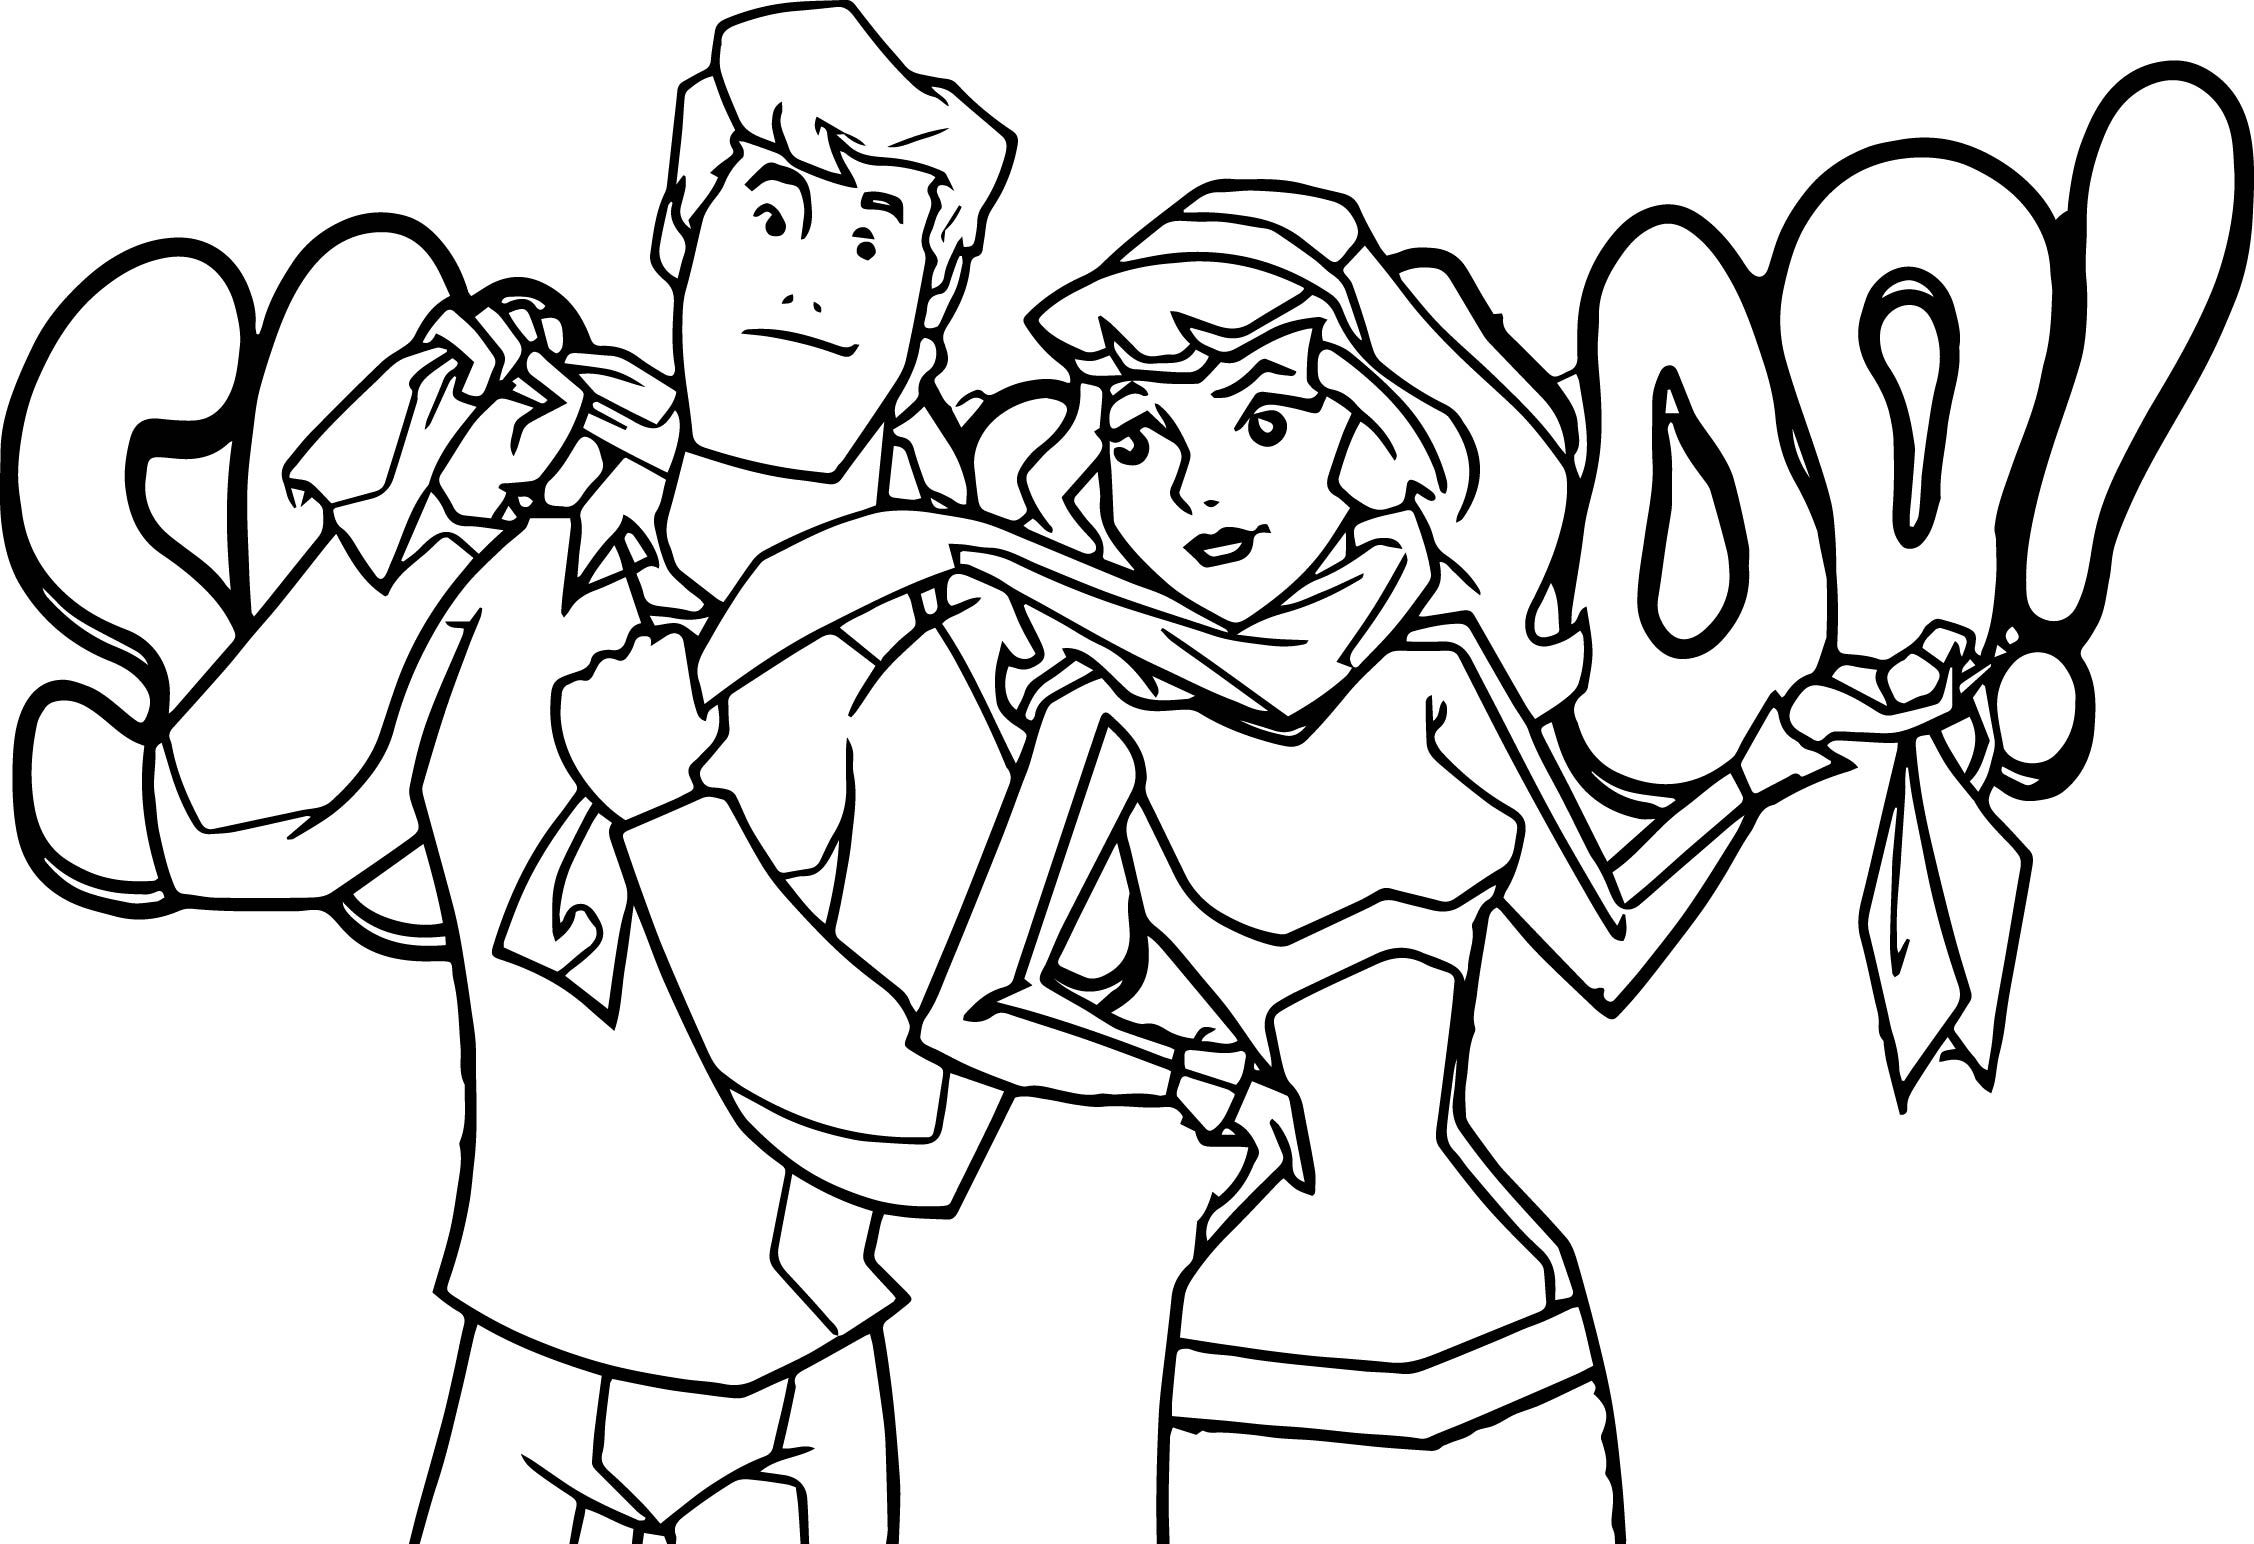 Daphne Blake Coloring Pages Daphne Blake Coloring Pages